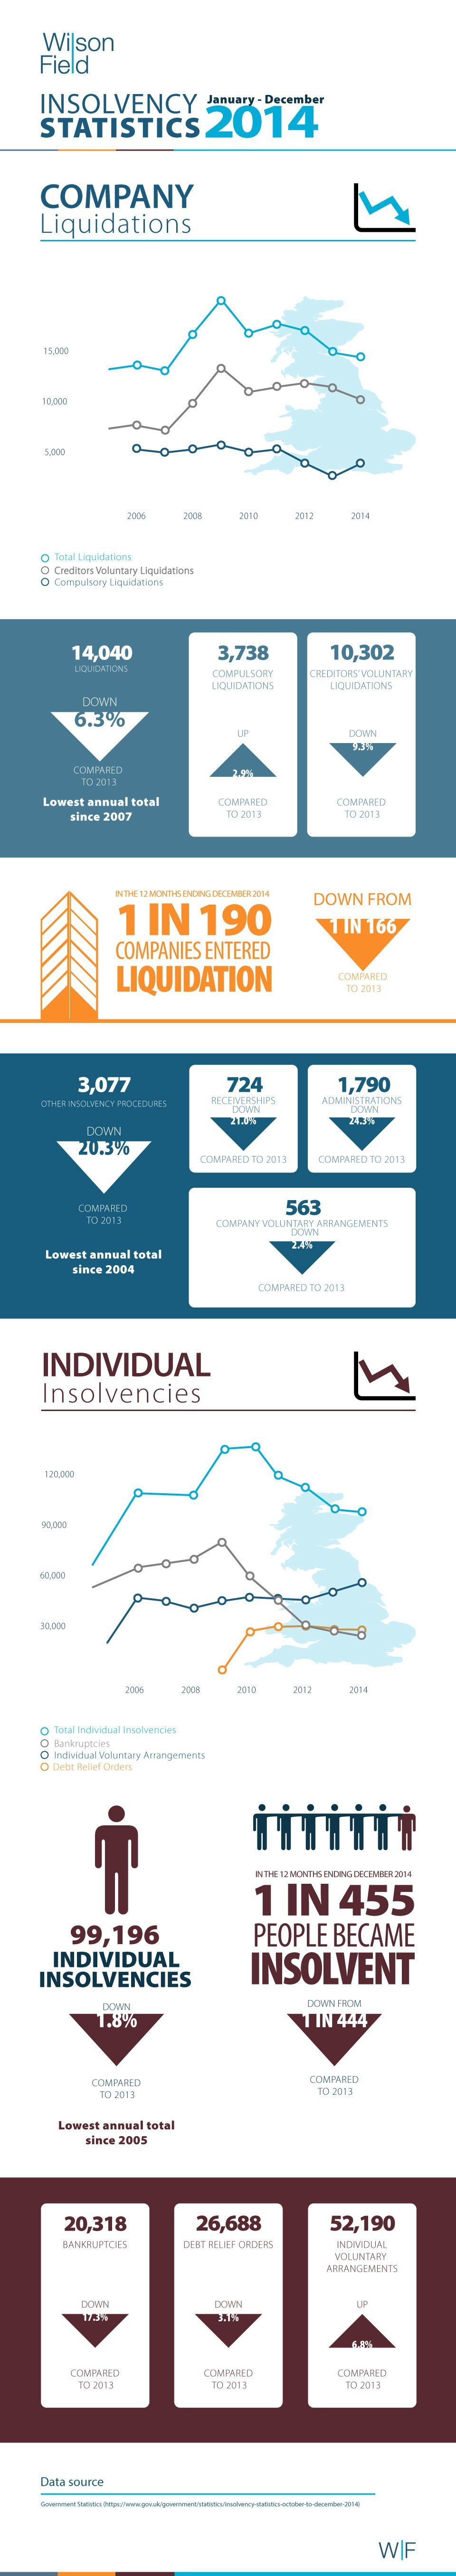 Insolvency-statistics-infographic-2014